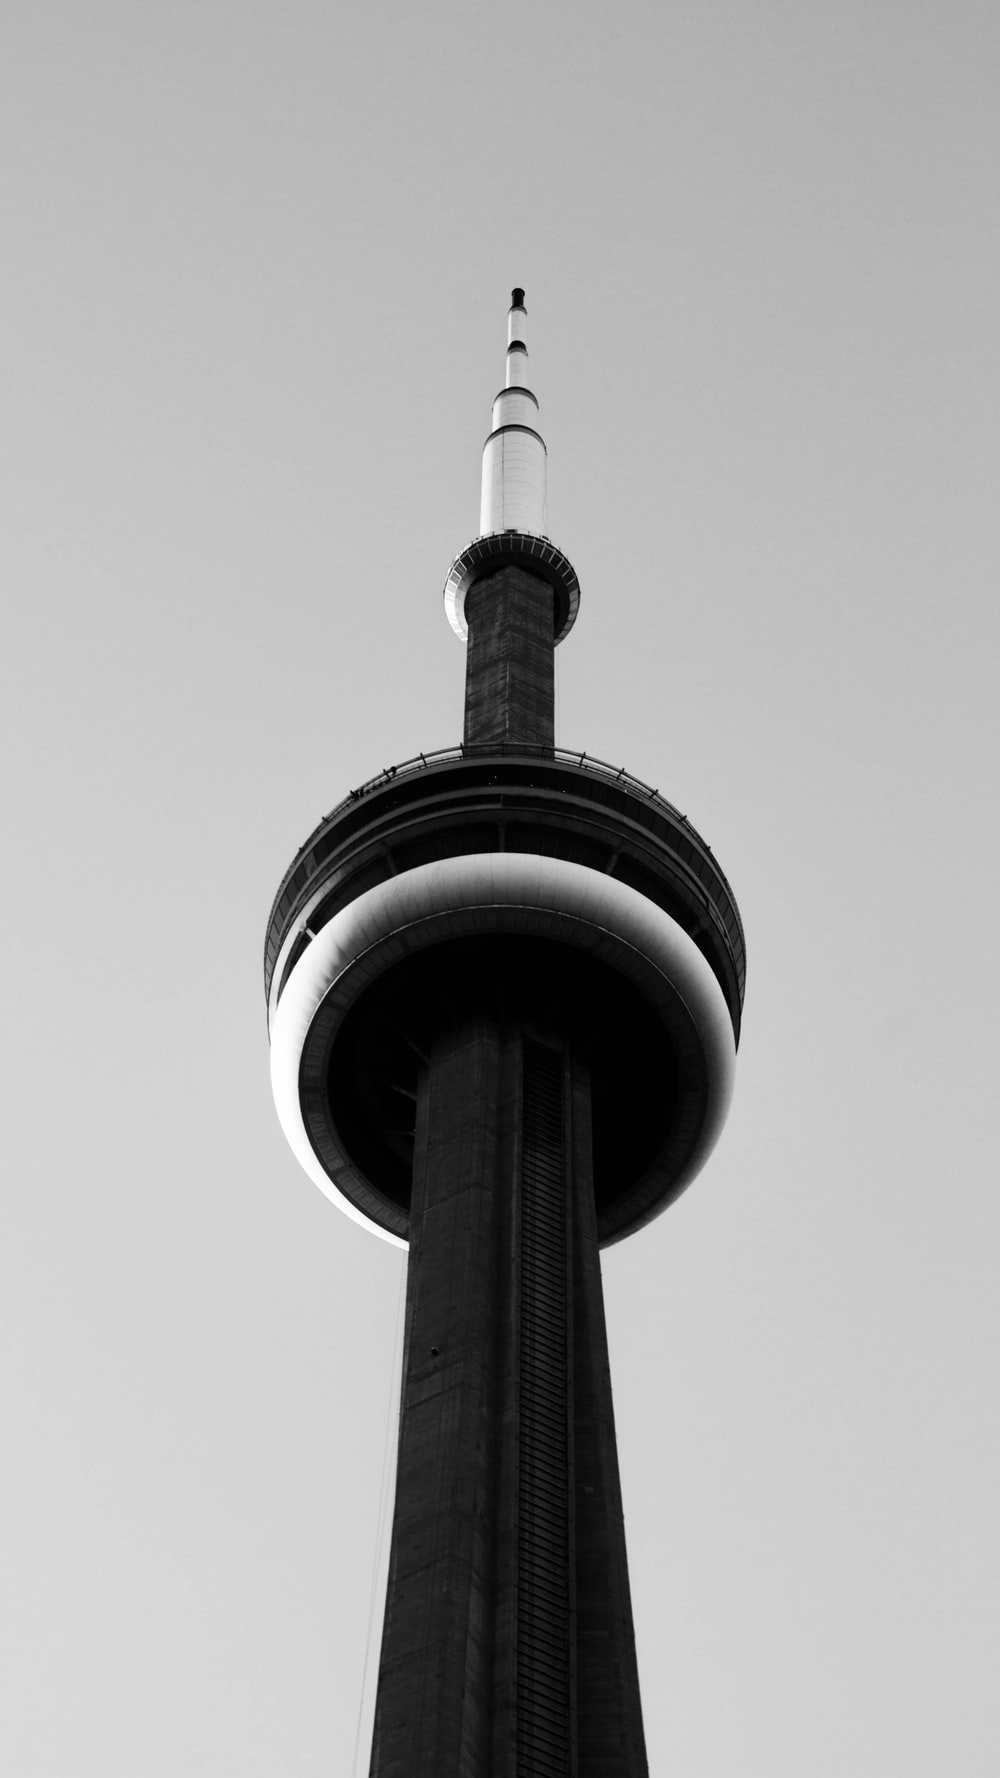 grayscale photography of tower